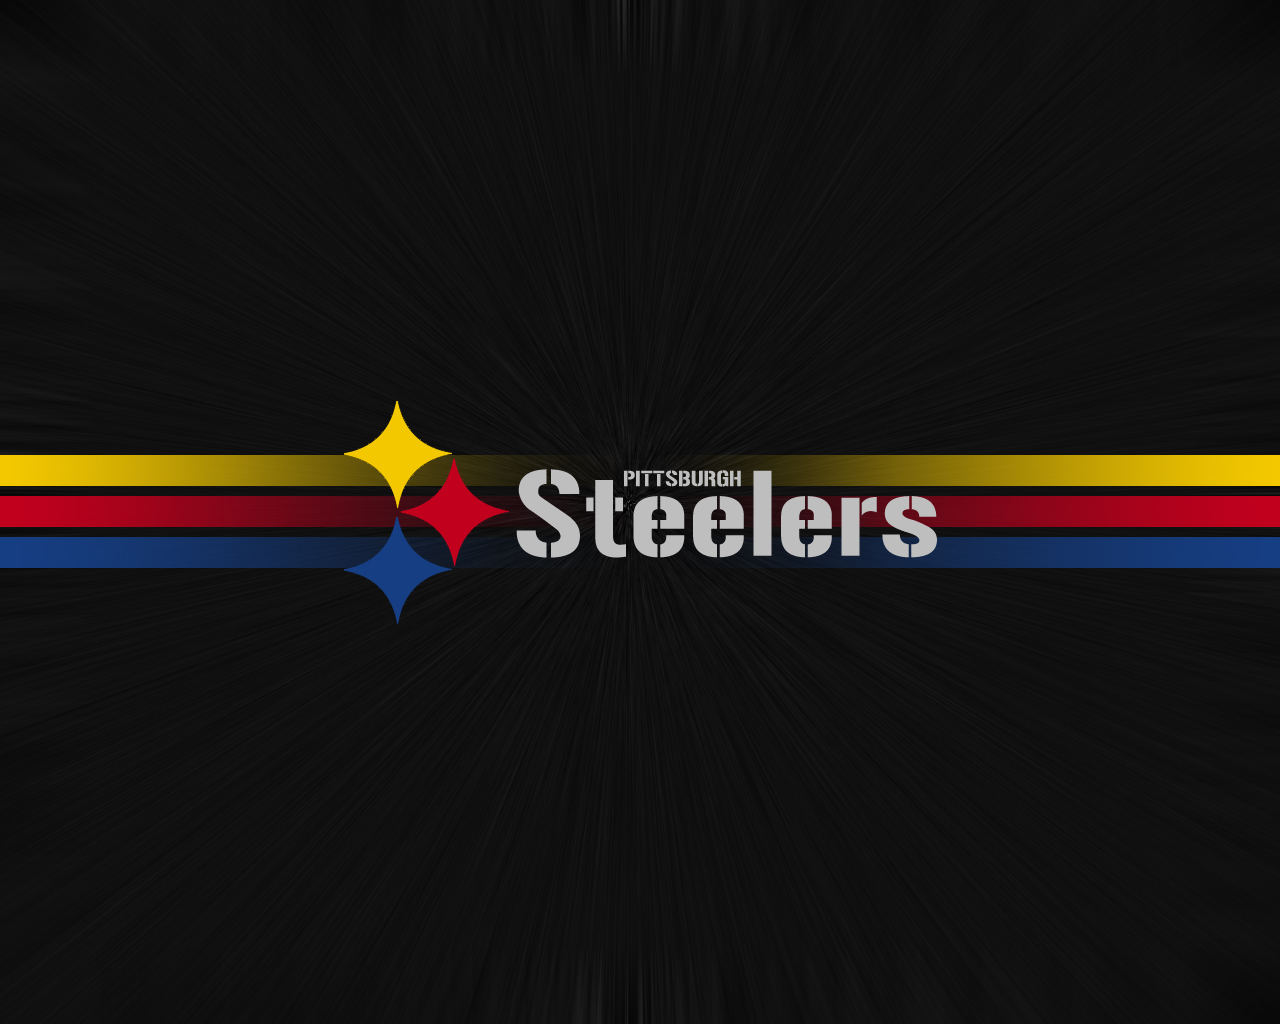 in pittsburgh steelers - photo #16